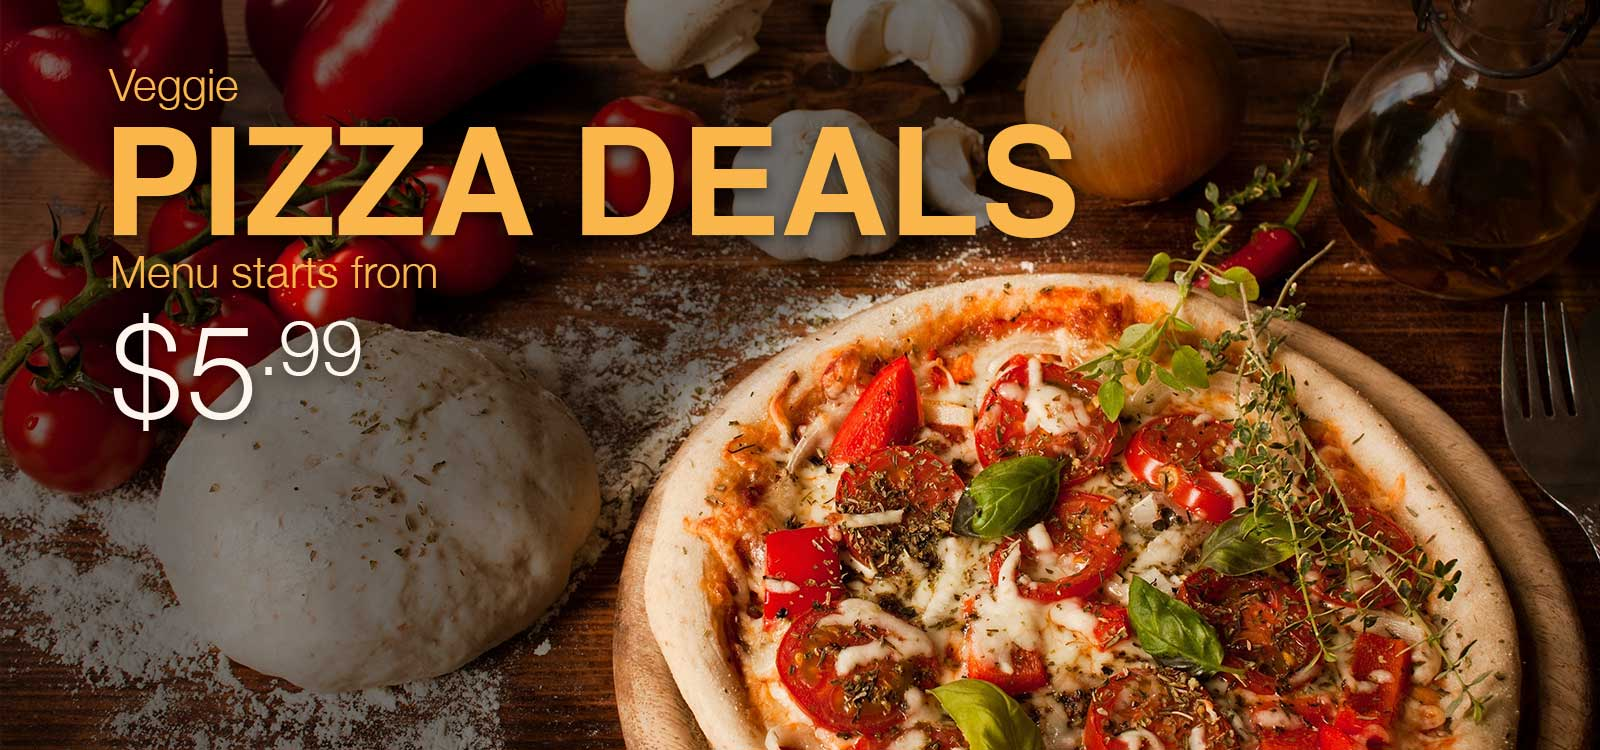 Veggie Planet Deal: Veggie Pizza deals starting from $4.99